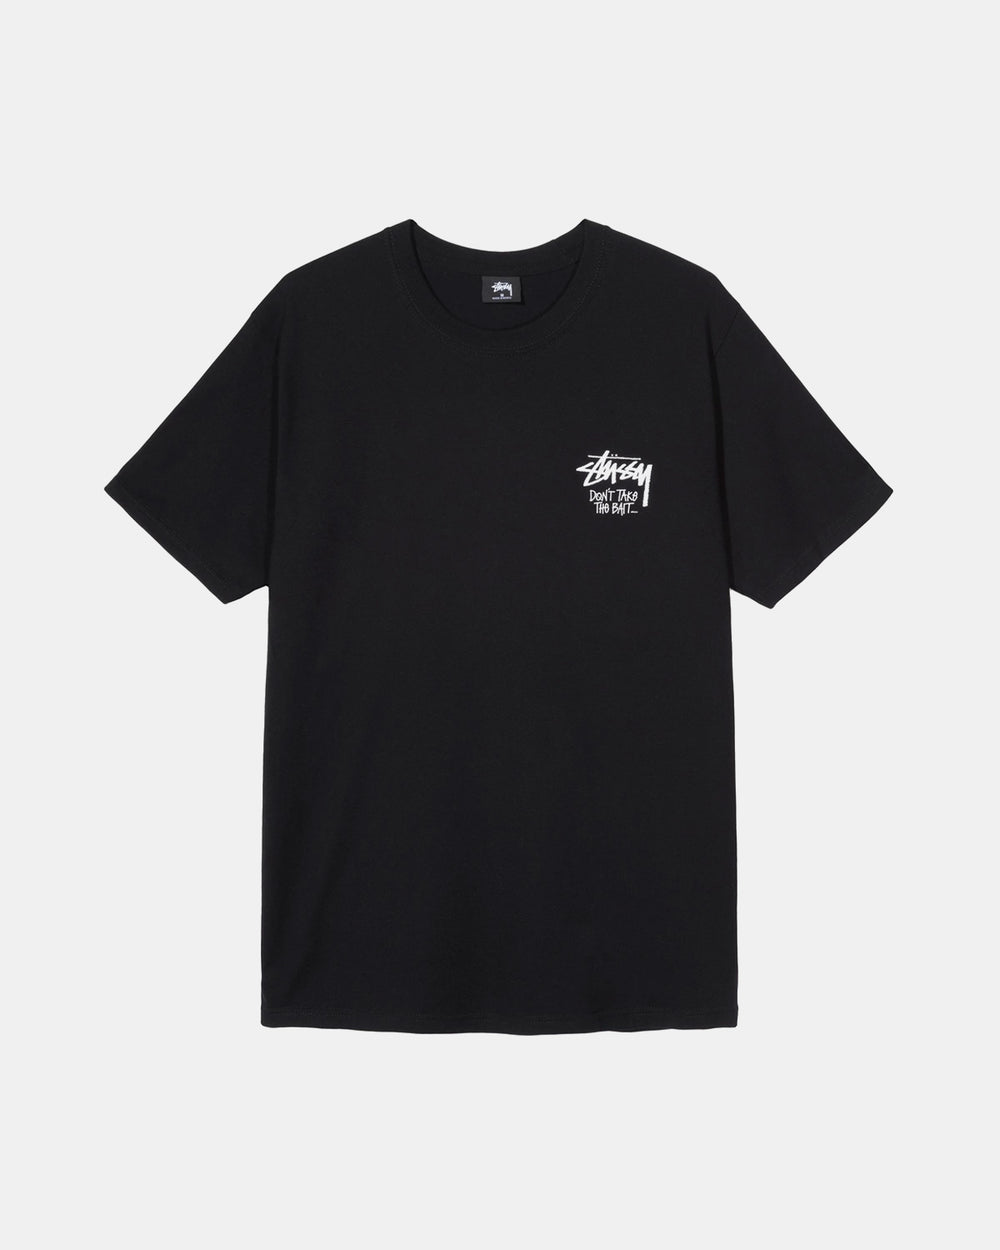 Stussy - Don't Take the Bait Tee (Black)